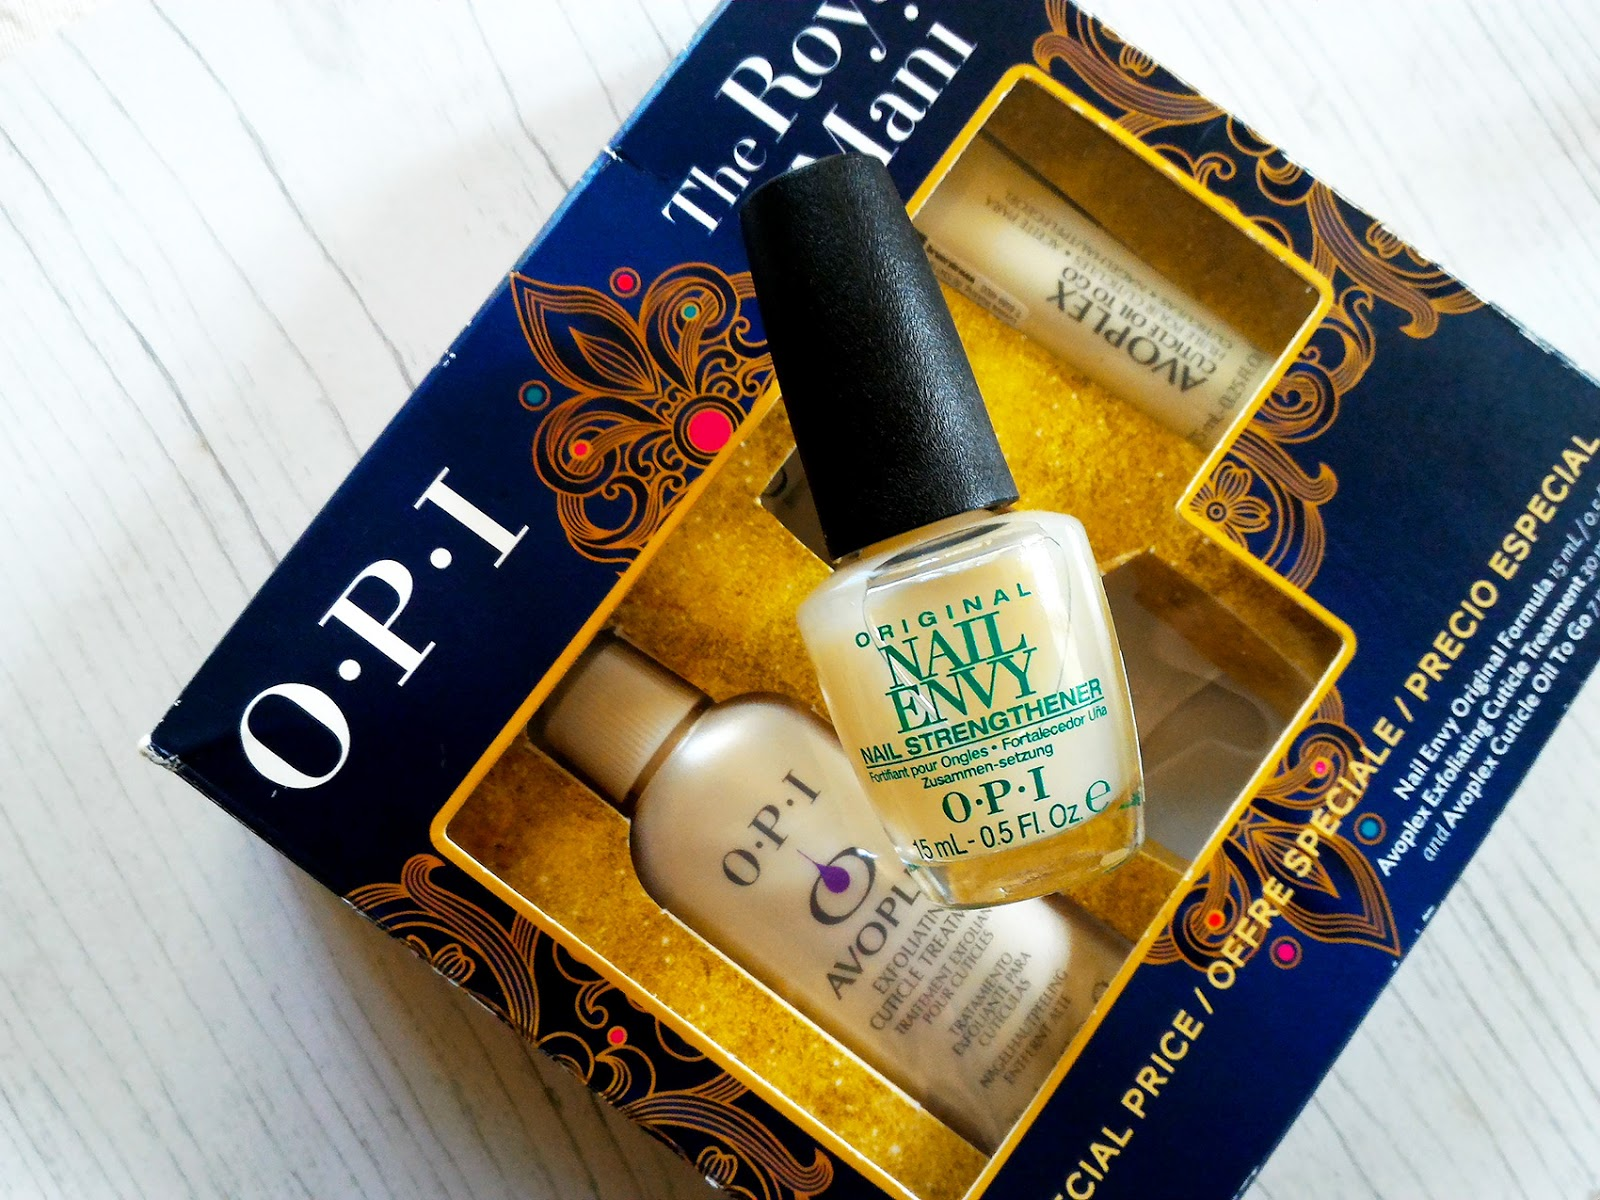 OPI The Royal Mani: Nail Envy Original Formula - Shash Stash